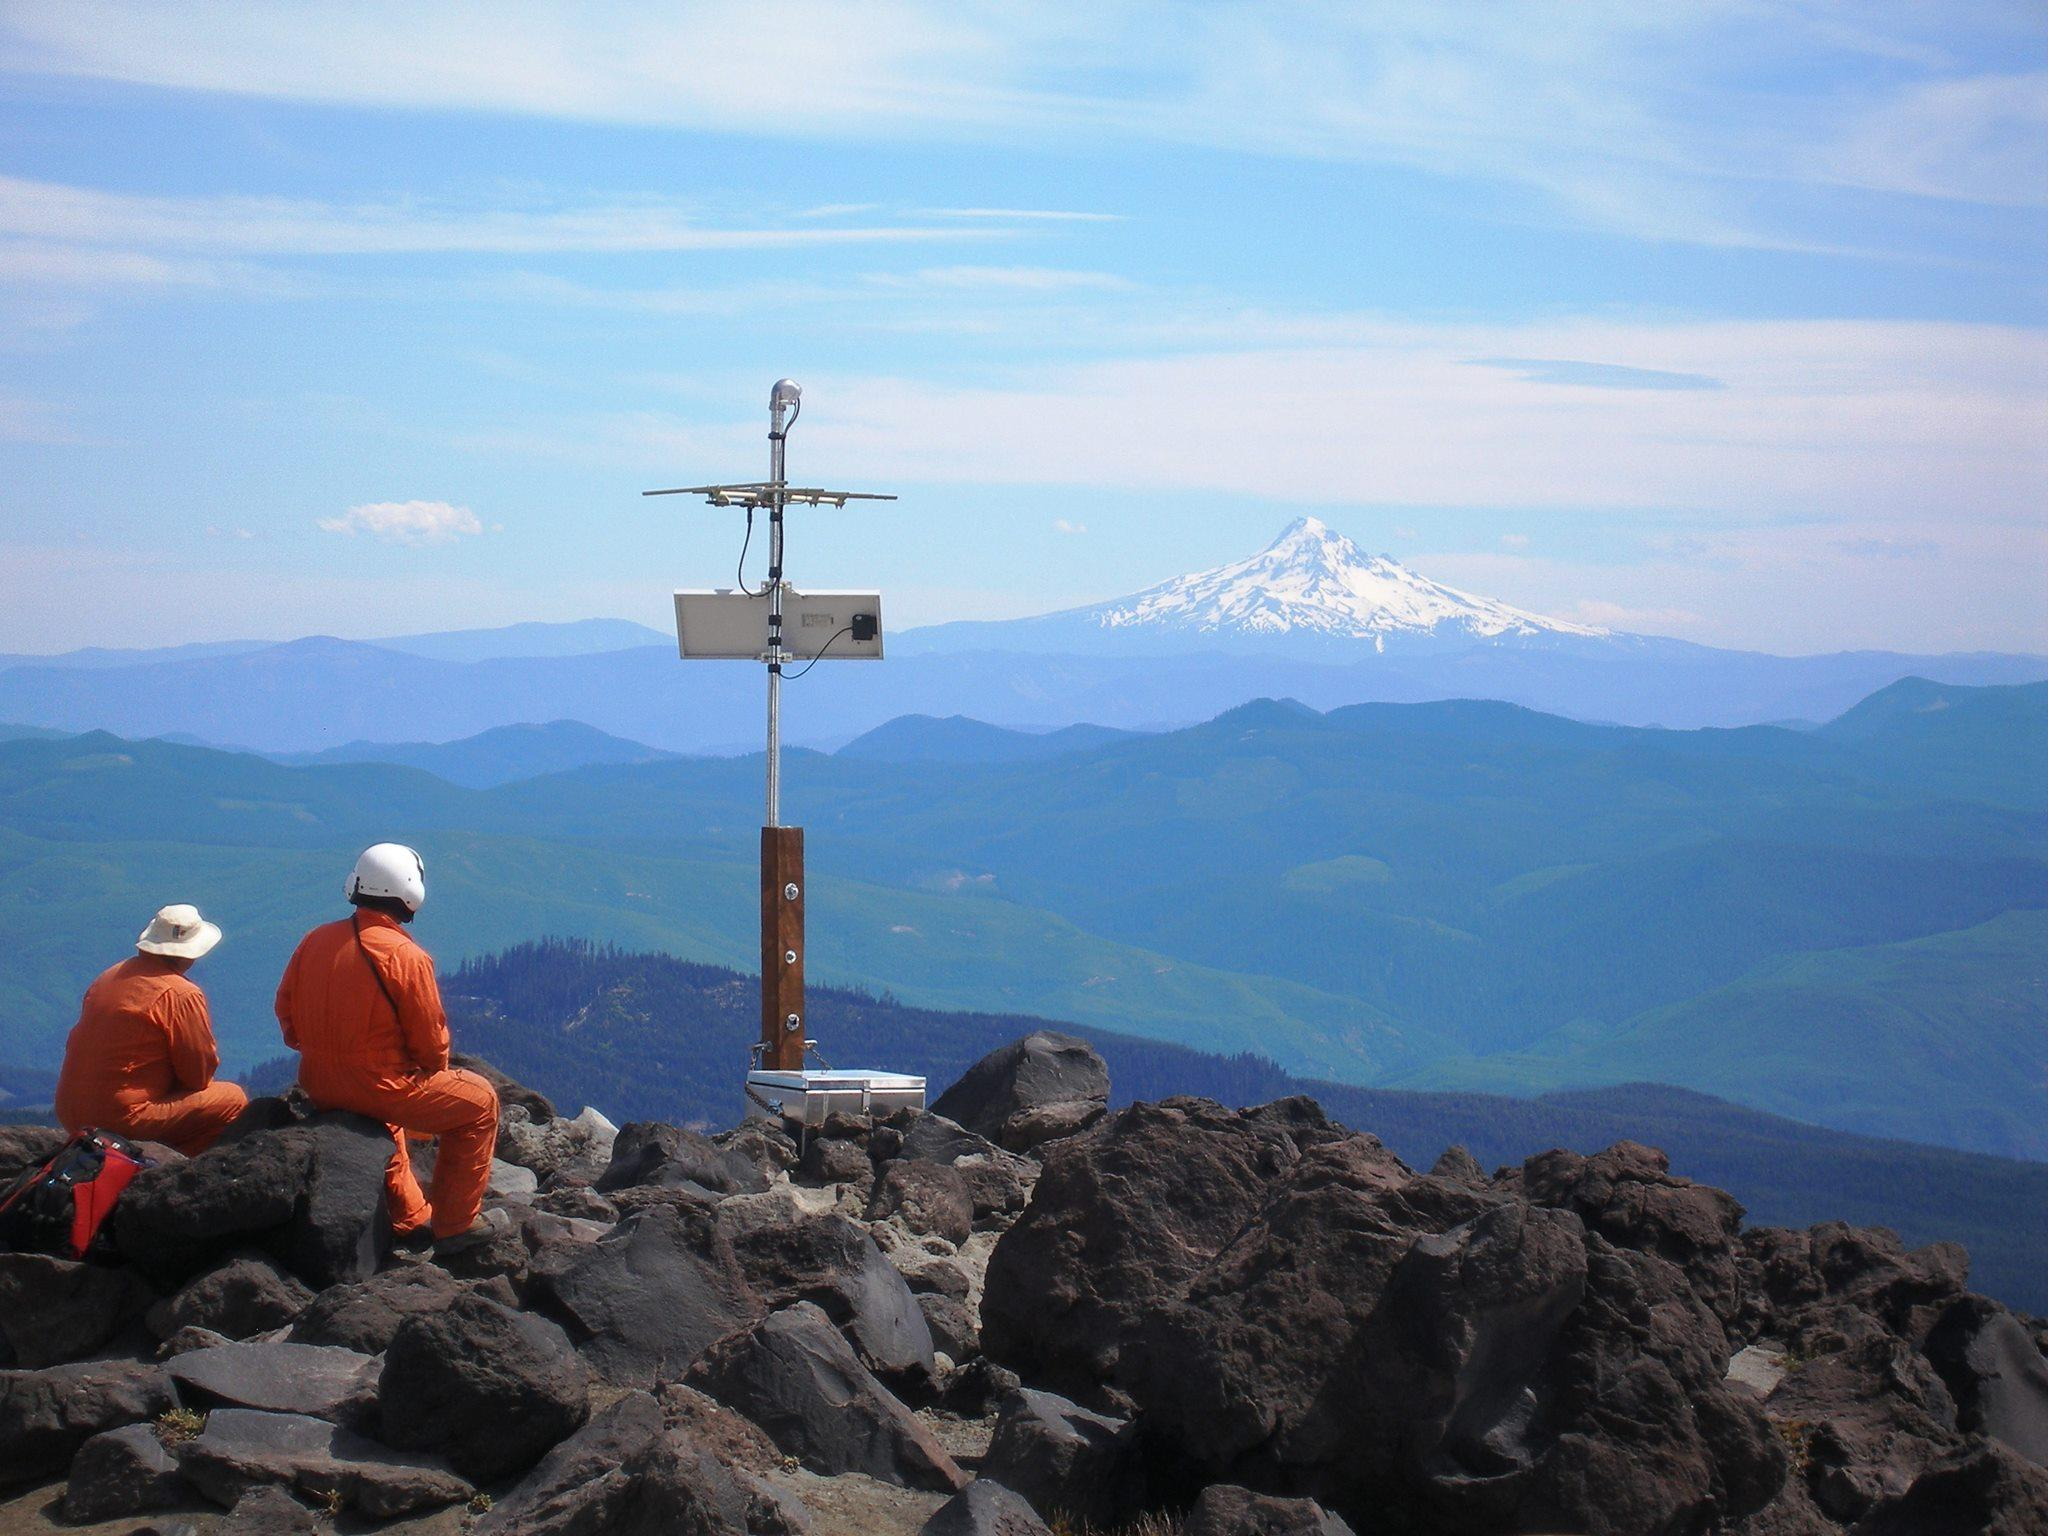 USGS awards $10.4M to ShakeAlert earthquake early warning system in the Pacific Northwest